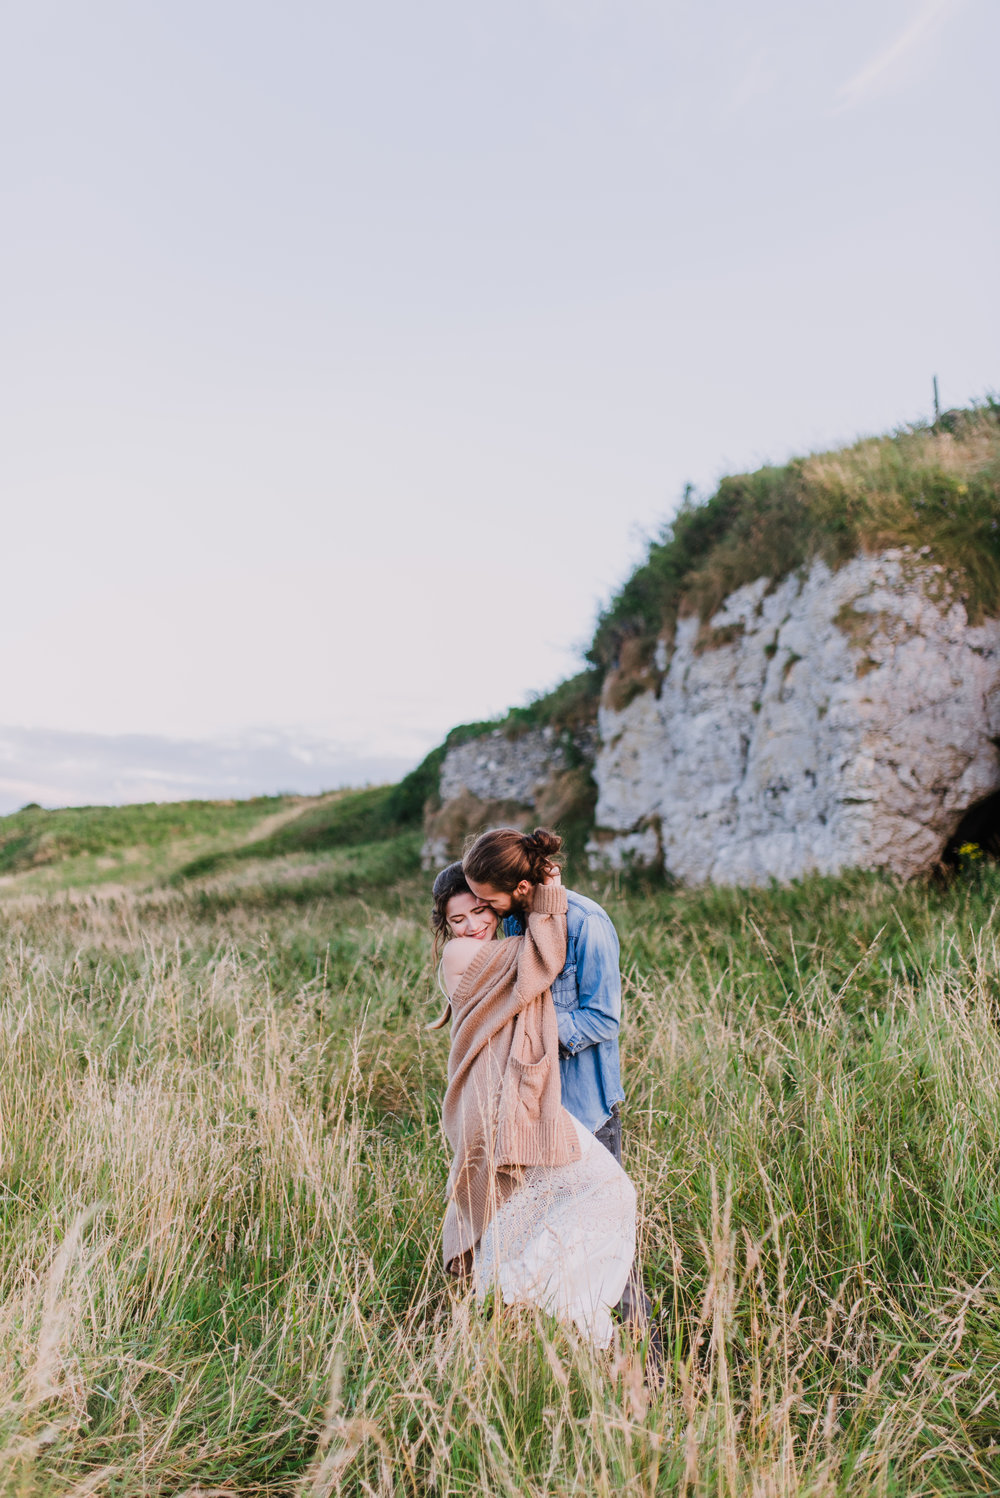 boho styled engagement photoshoot in Islandmagee, Ireland by hello, sugar wedding photography 2.jpg